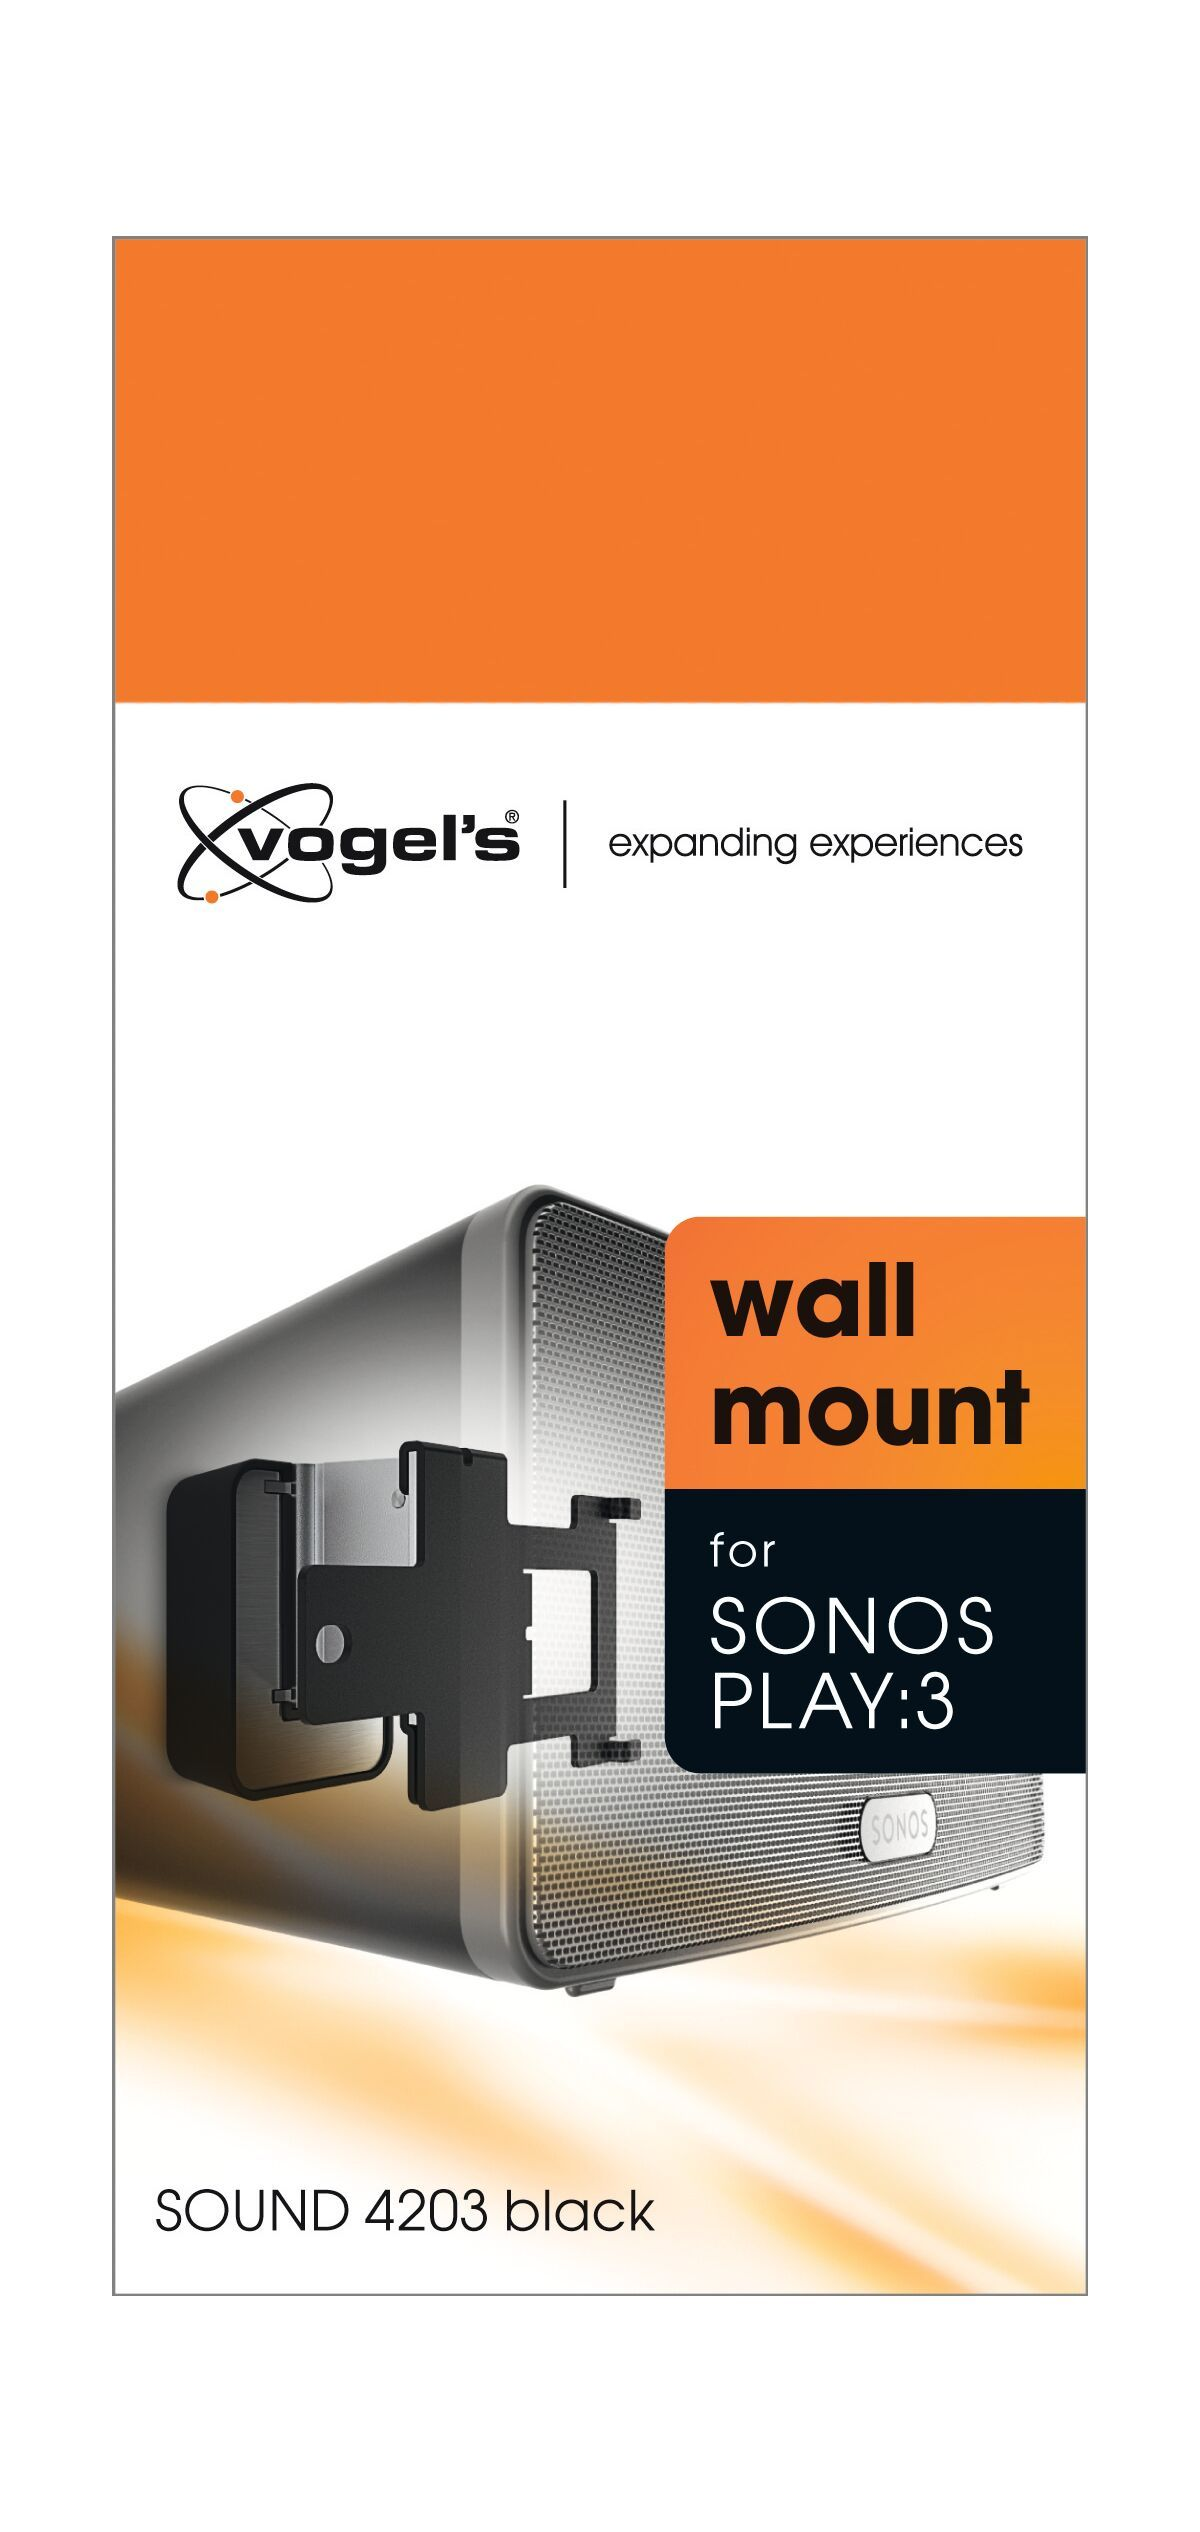 Vogel's SOUND 4203 Højttaler vægbeslag til SONOS PLAY:3 (sort) - Packaging front